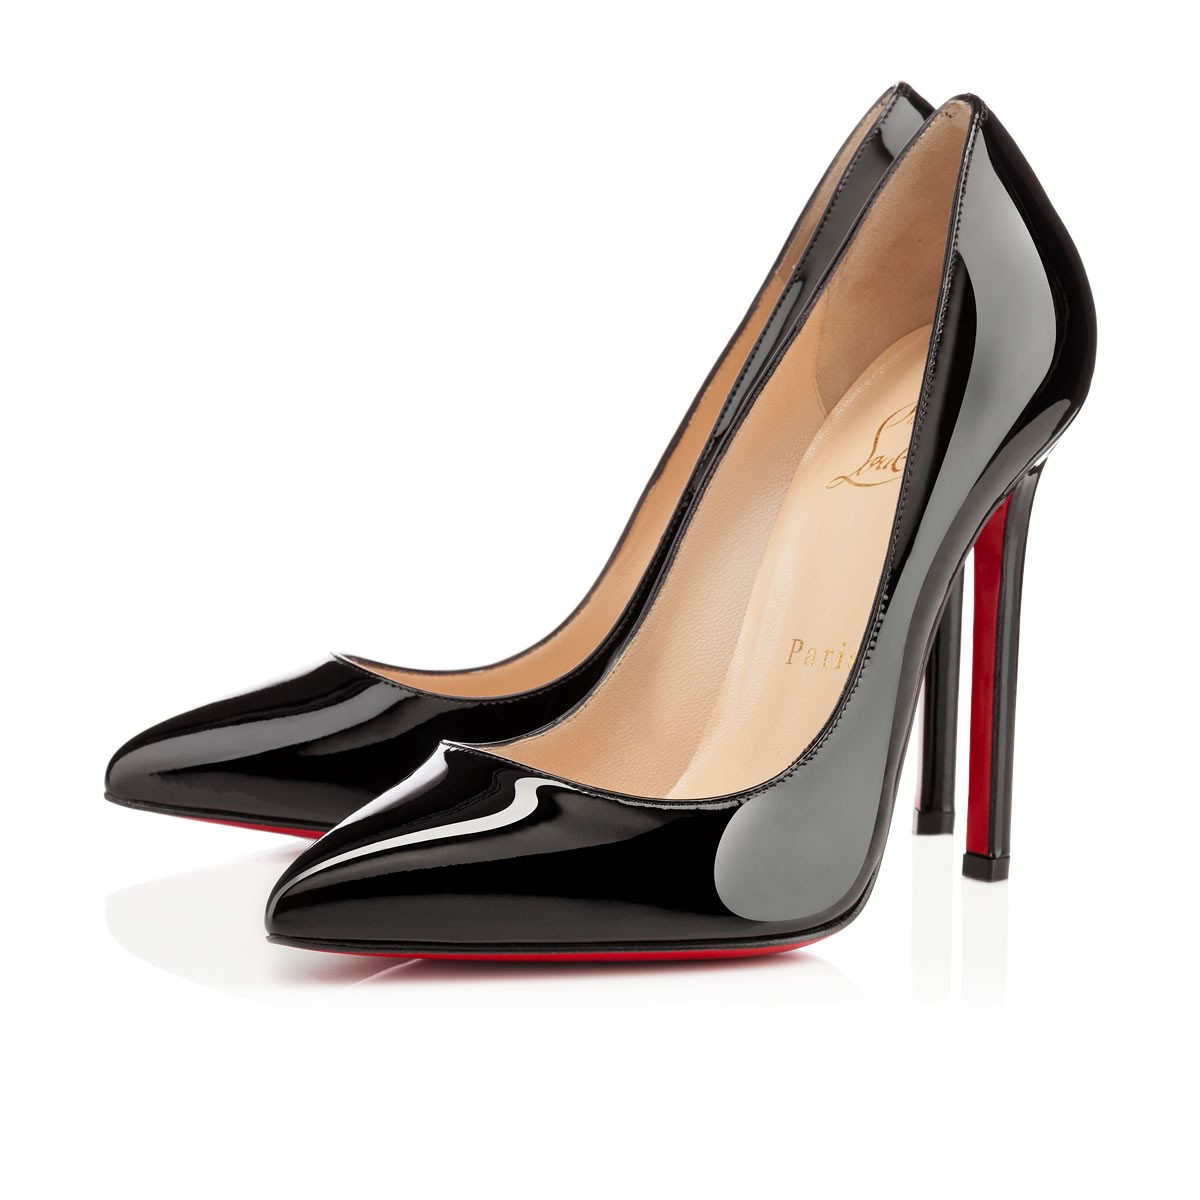 10 Types of Shoes Which Every Woman Should Have!